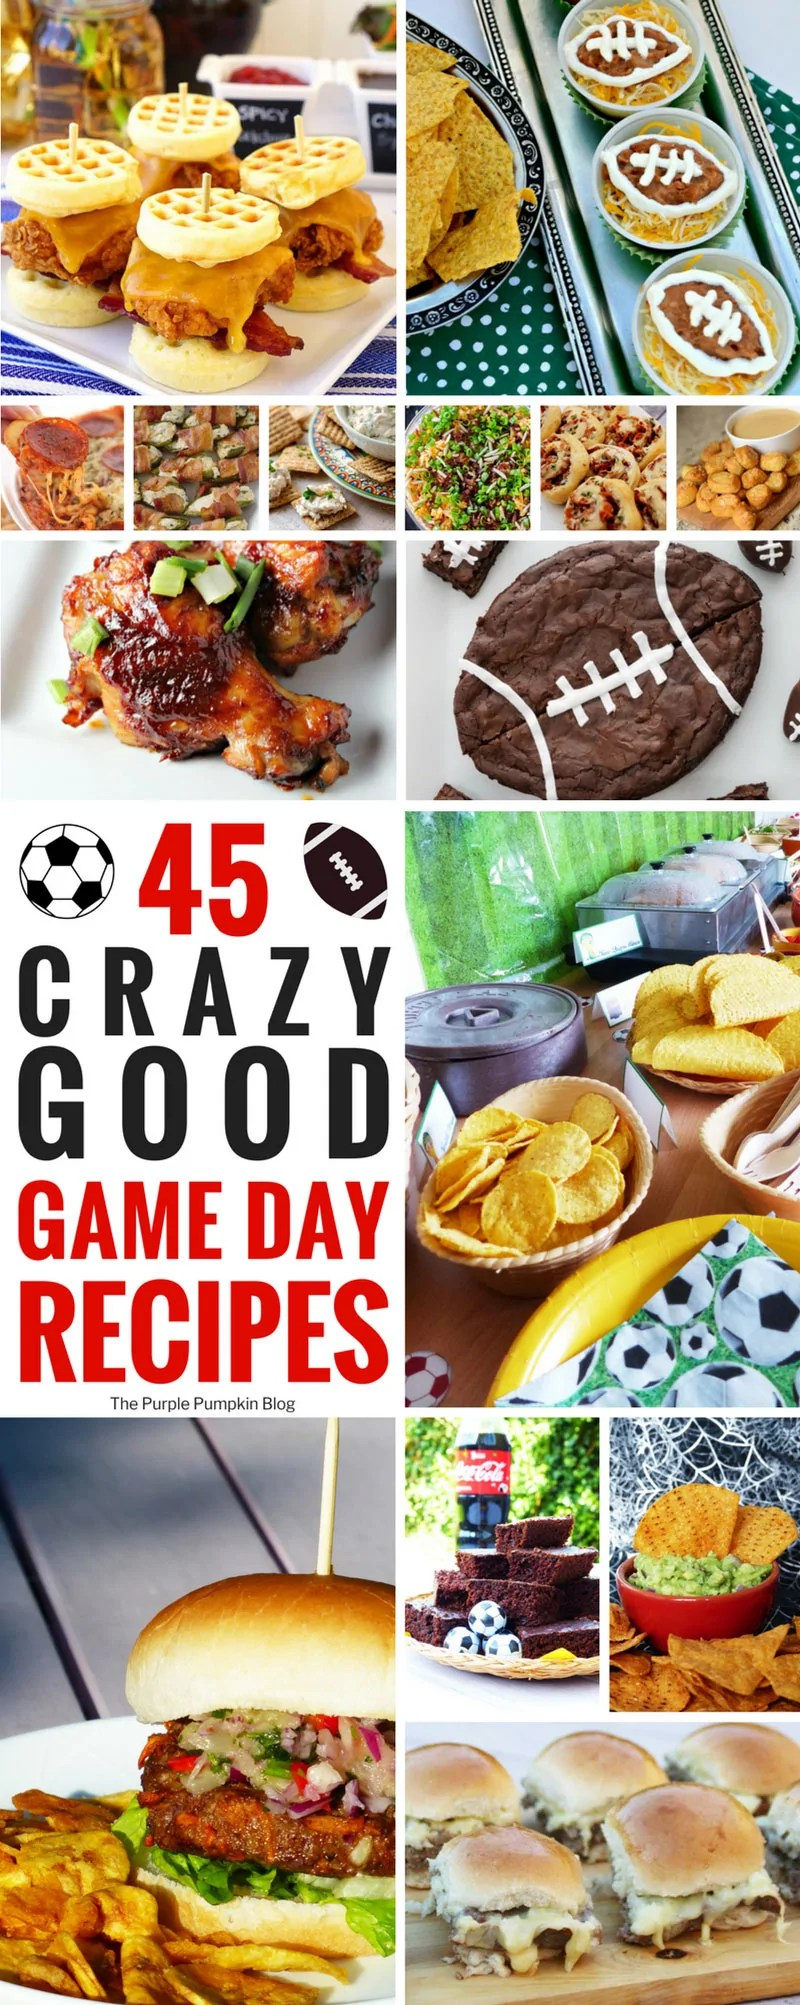 45 Crazy Good Game Day Recipes including apps, and desserts!